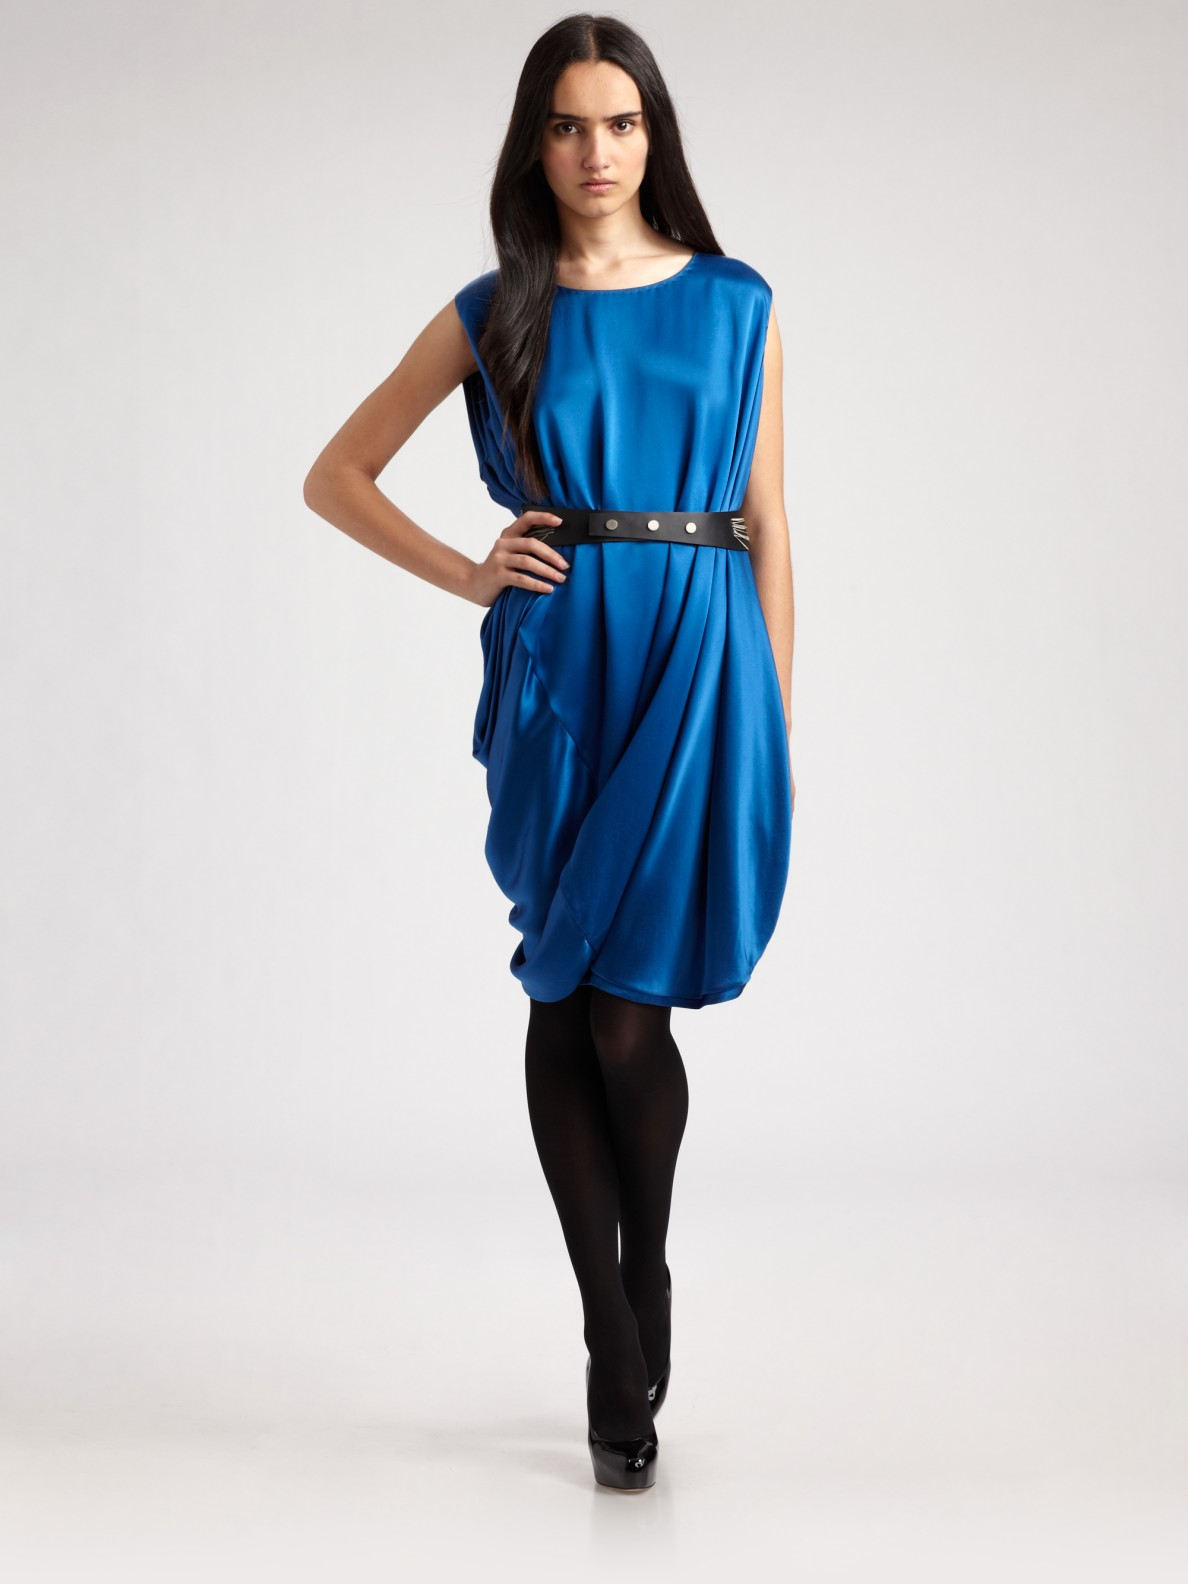 Ports 1961 Silk Charmeuse Bubble Dress in Blue - Lyst